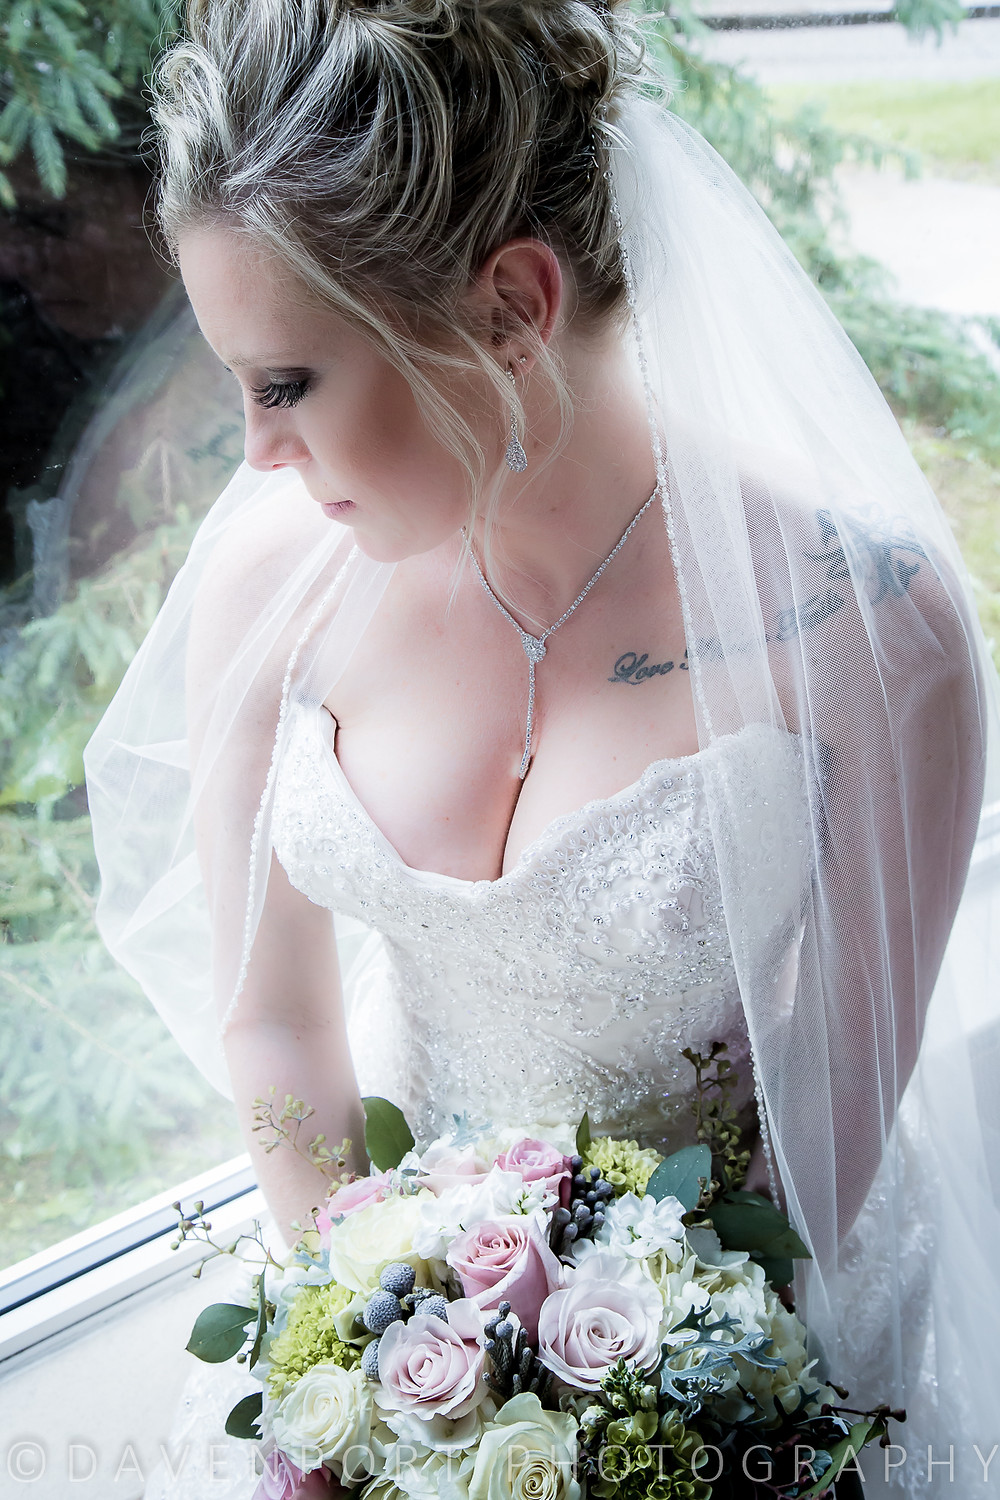 Bridal Portrait Indoors Rainy Day Wedding